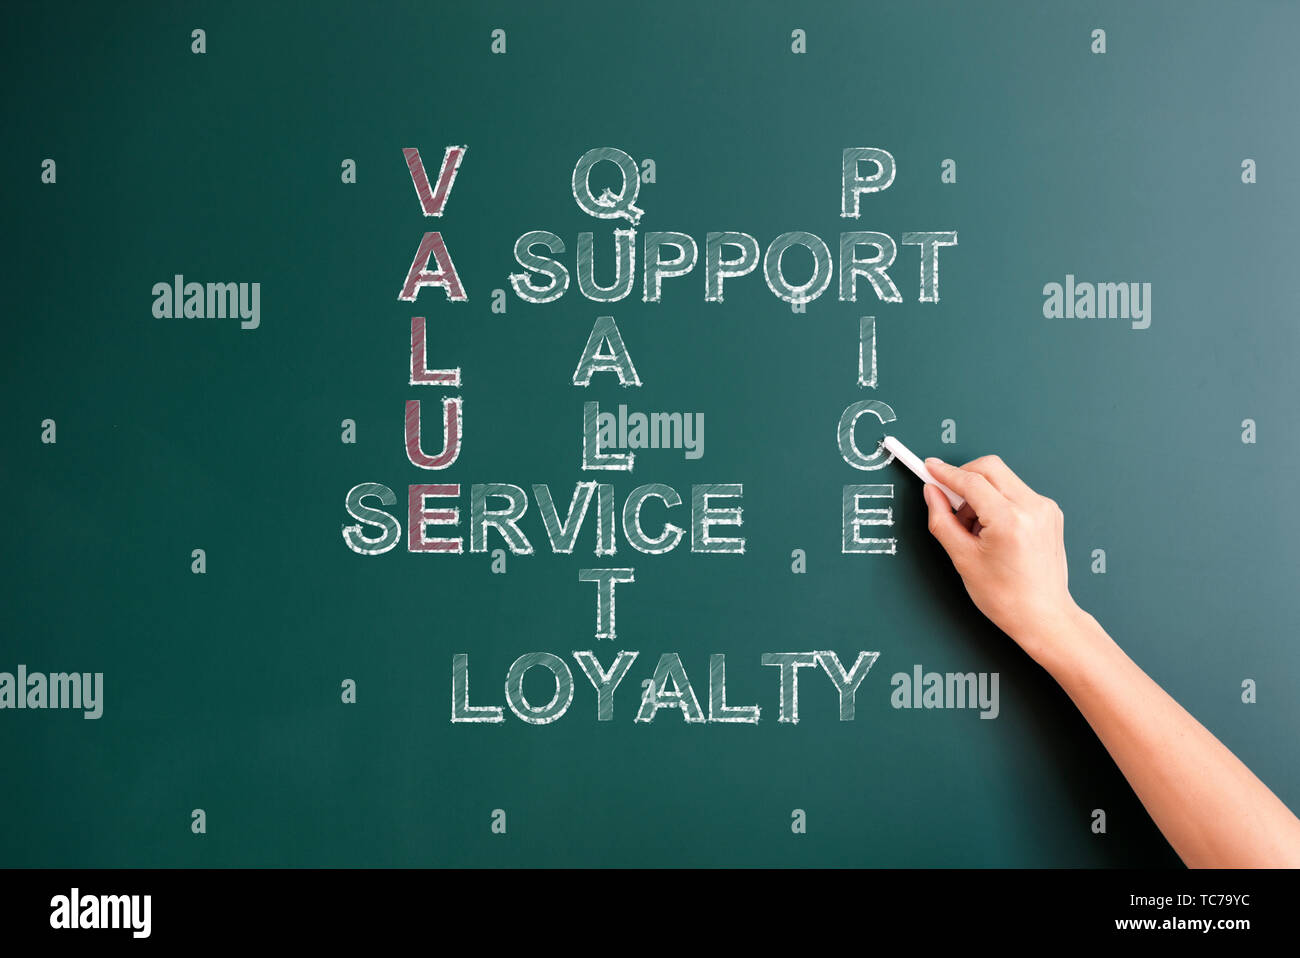 value related cross words puzzle written on blackboard - Stock Image